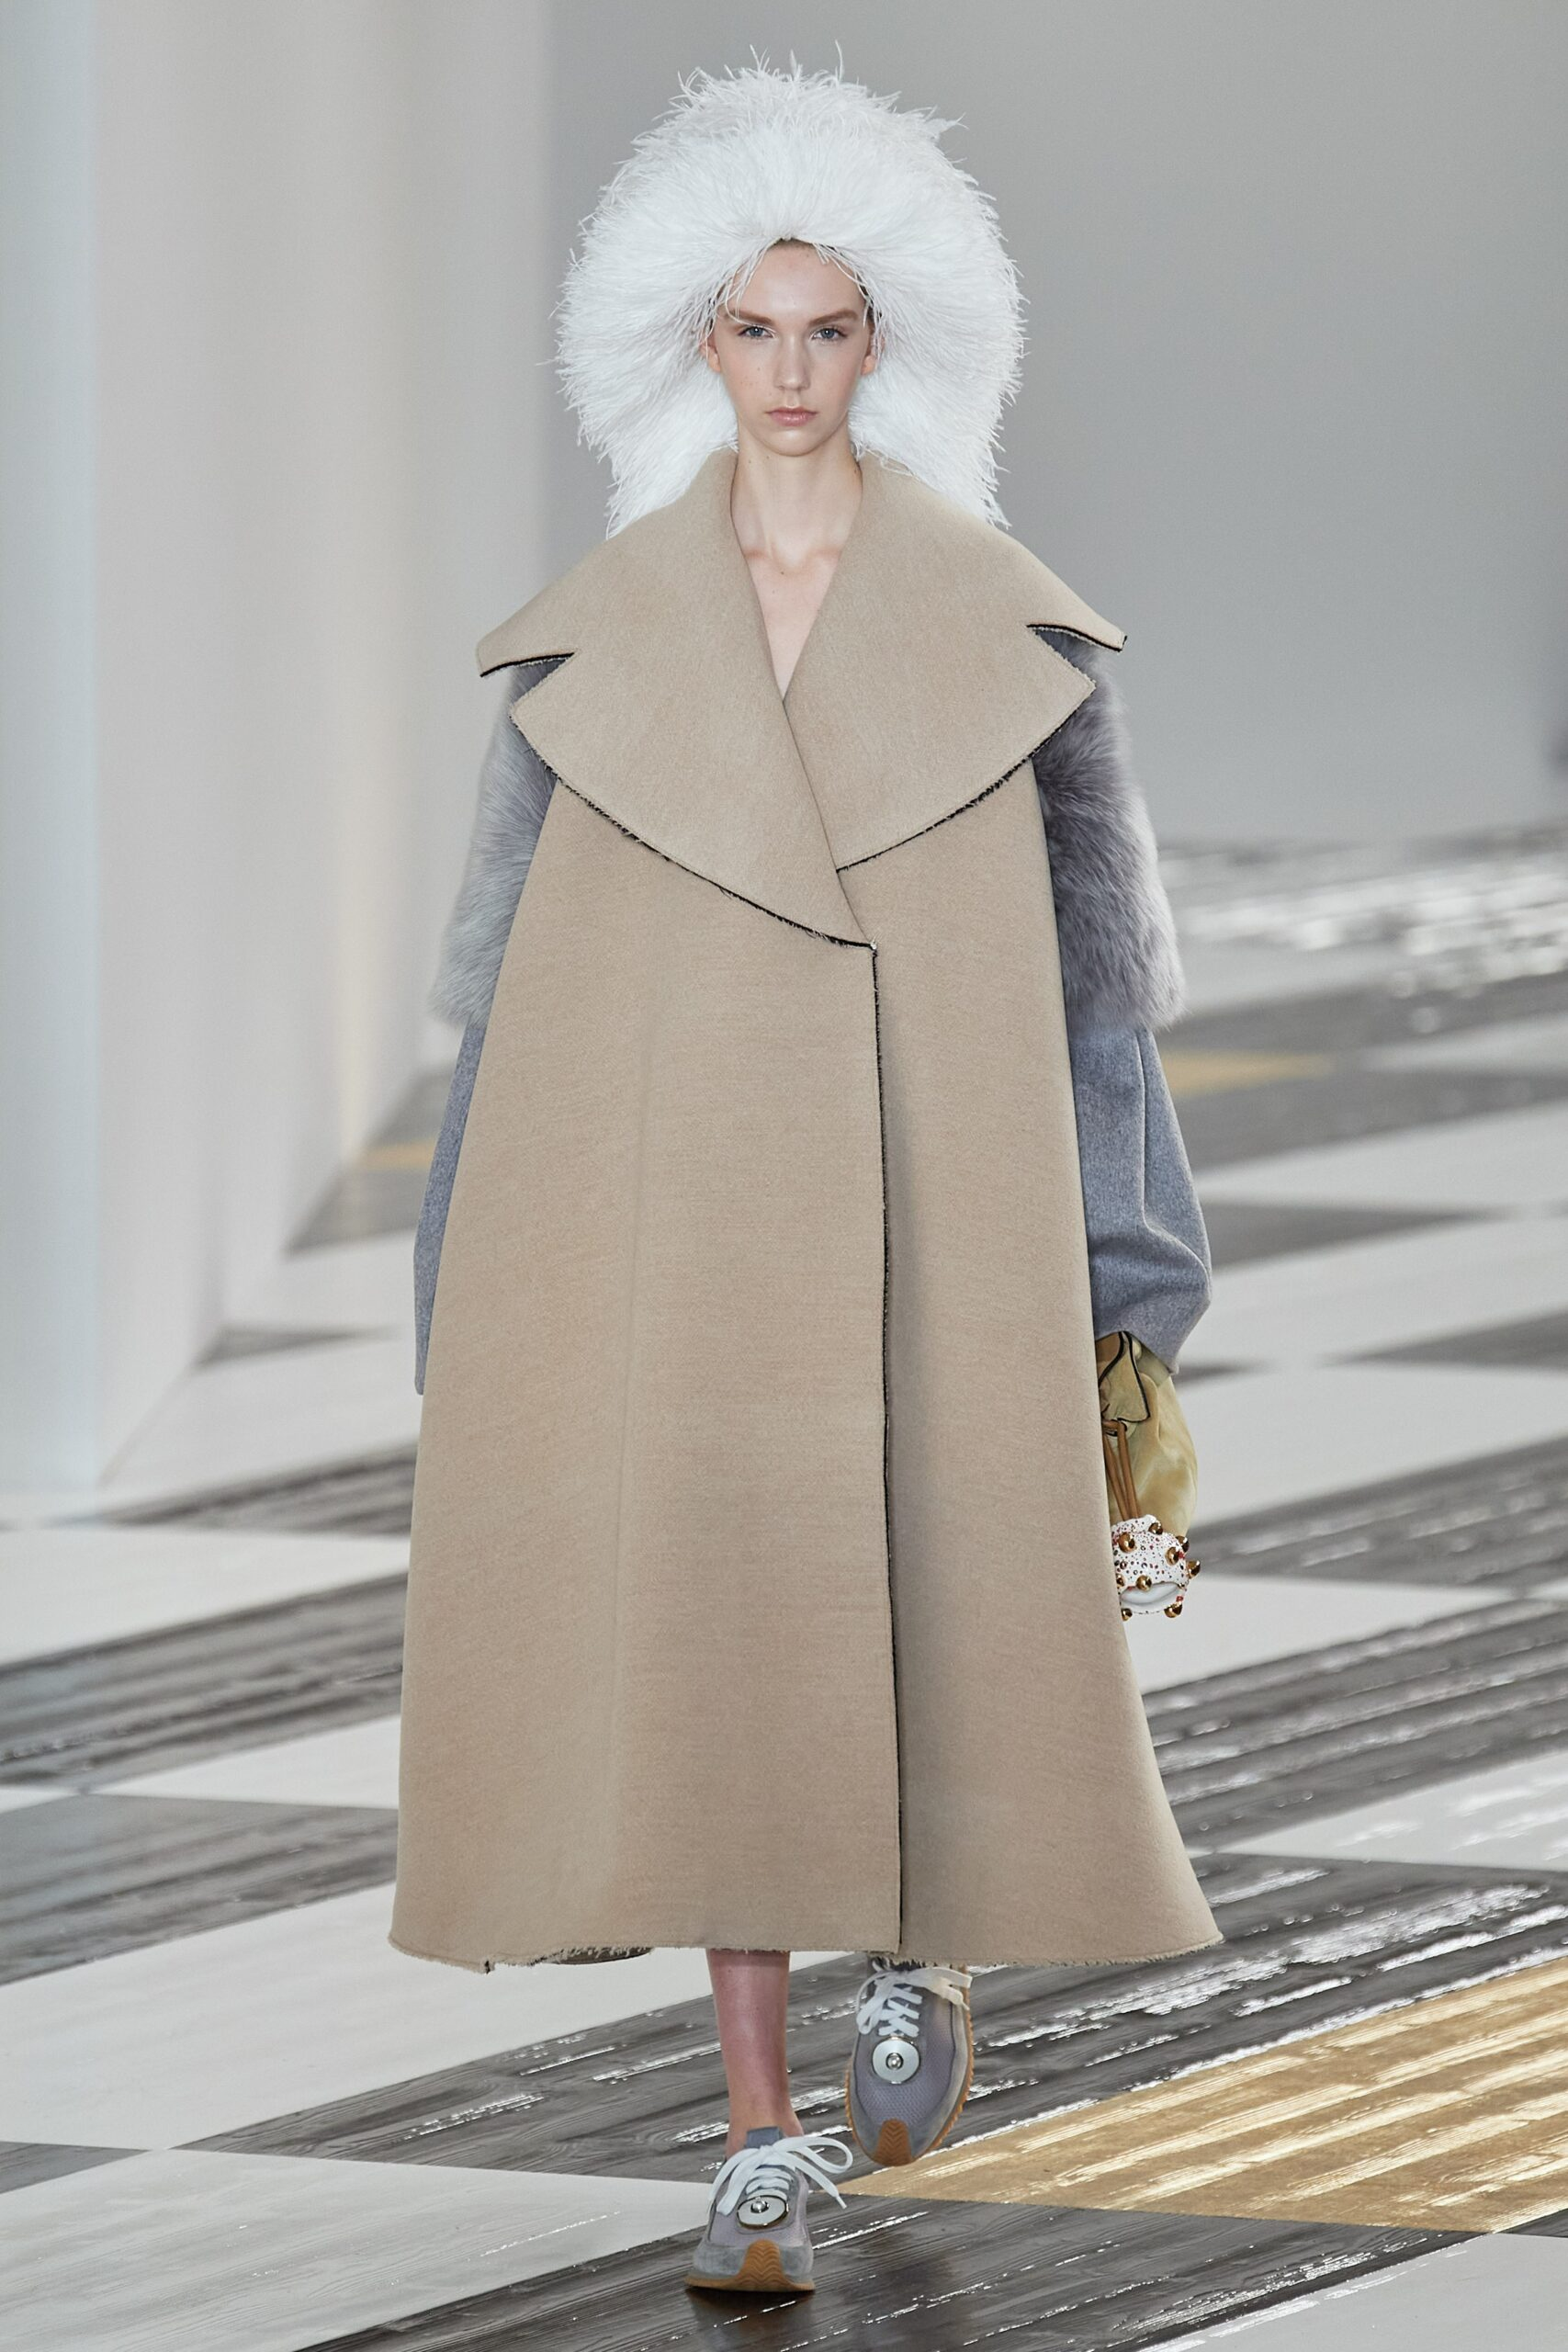 Loewe Fall 2020 ready-to-wear